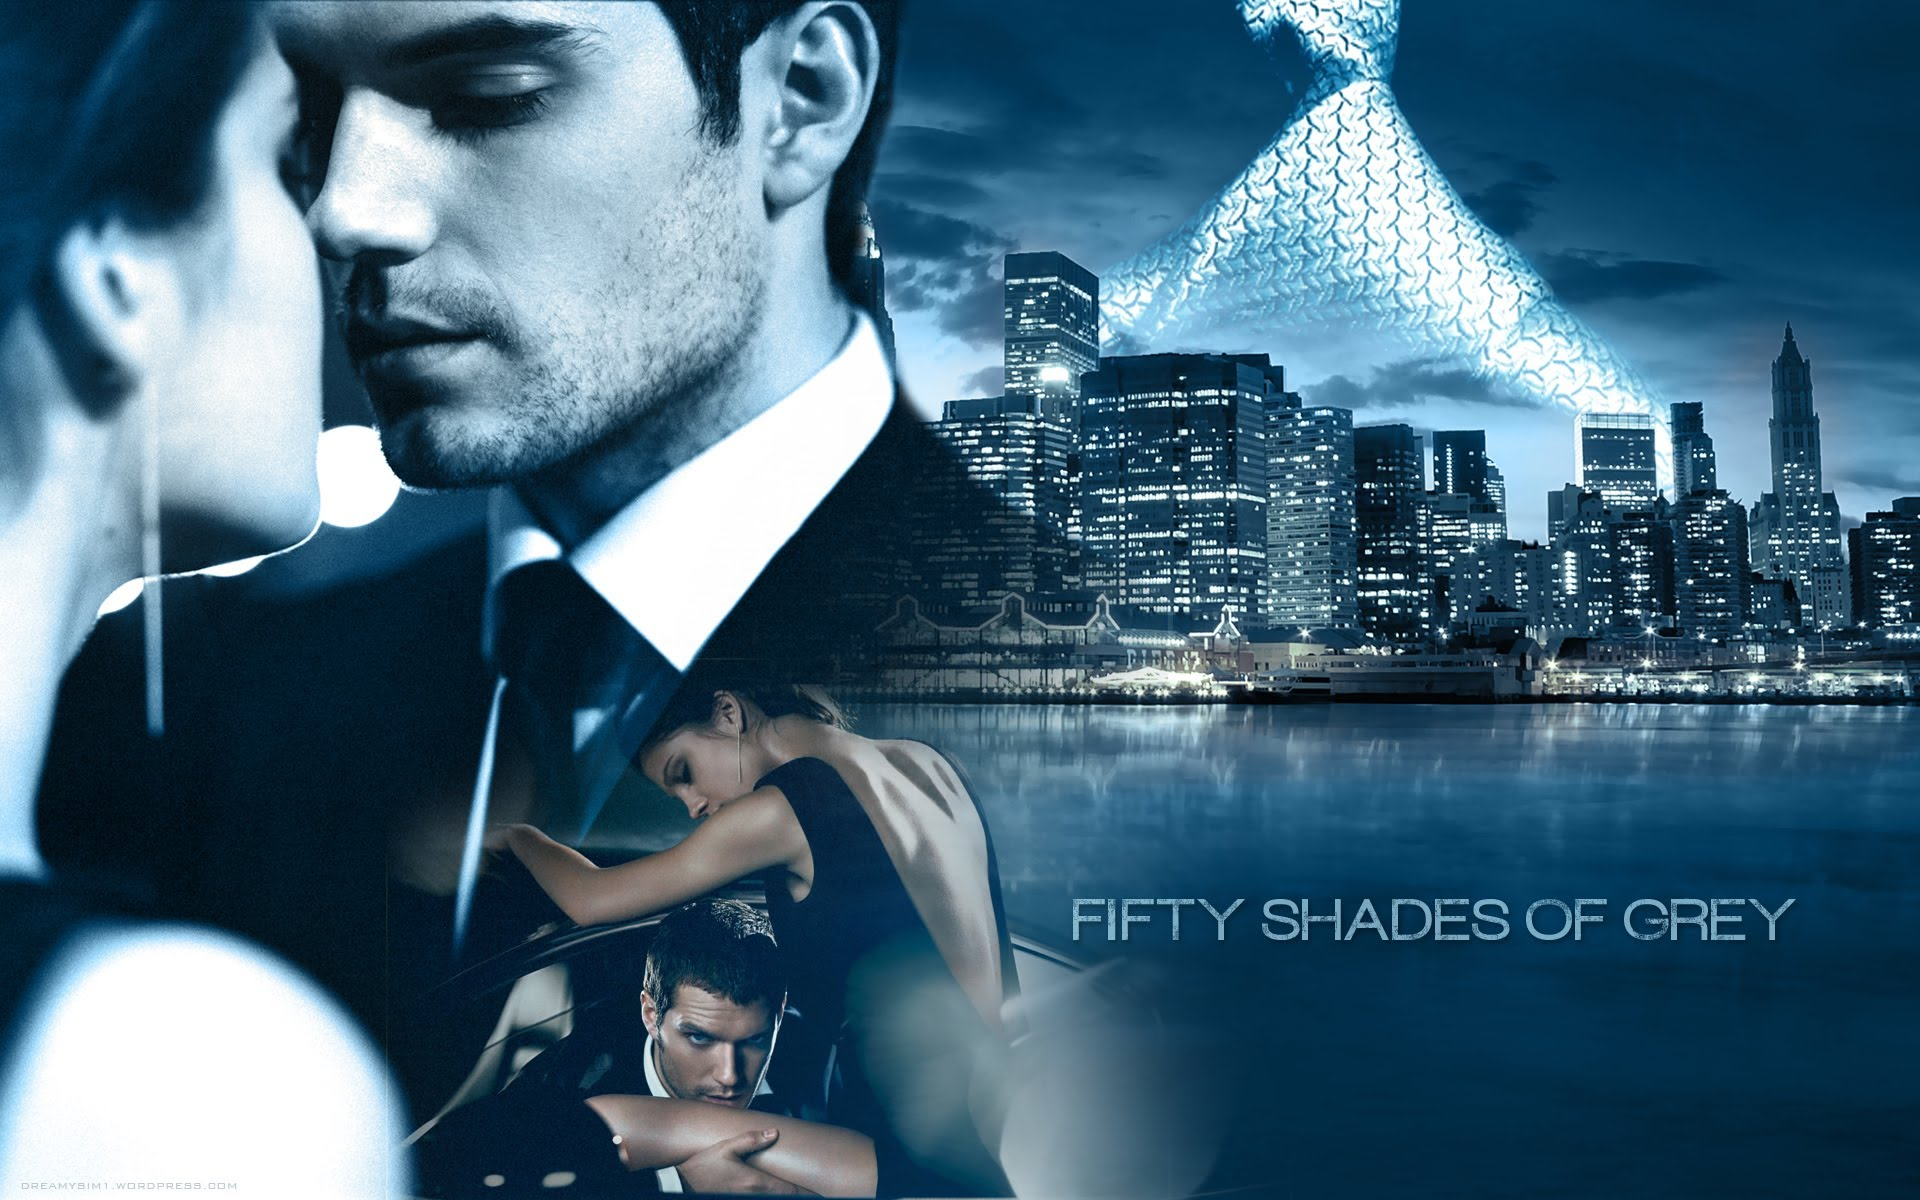 Fifty Shades of Grey (2015) - Wallpaper, High Definition ...